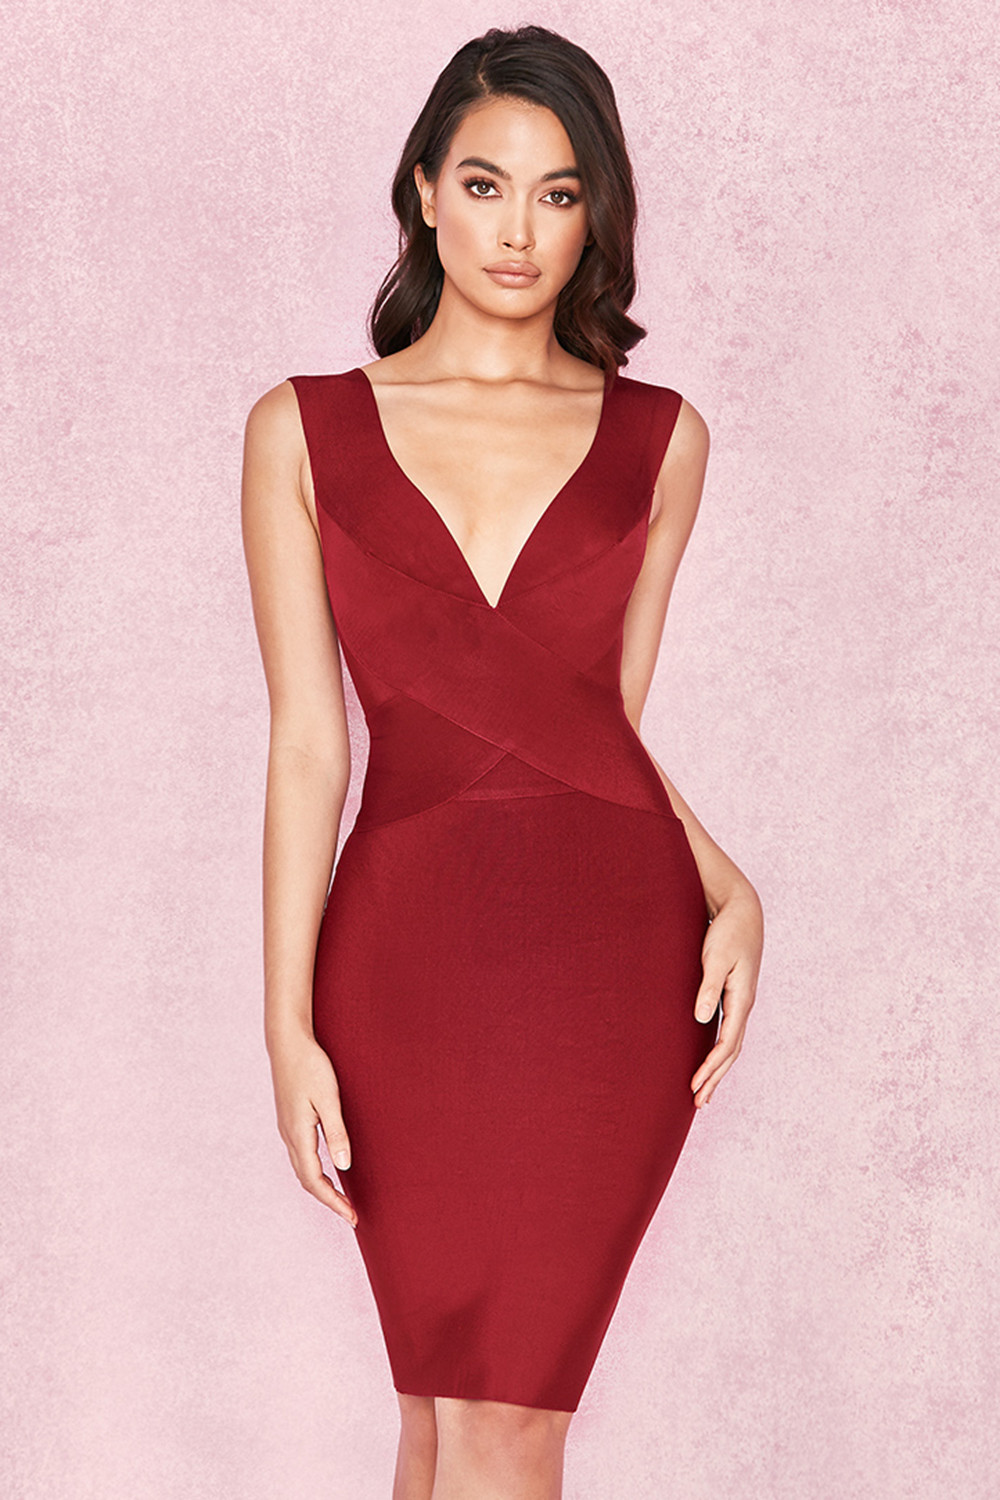 ef4c251bbe65 Clothing   Bandage Dresses    Ginevra  Wine Cross Front Bandage Dress